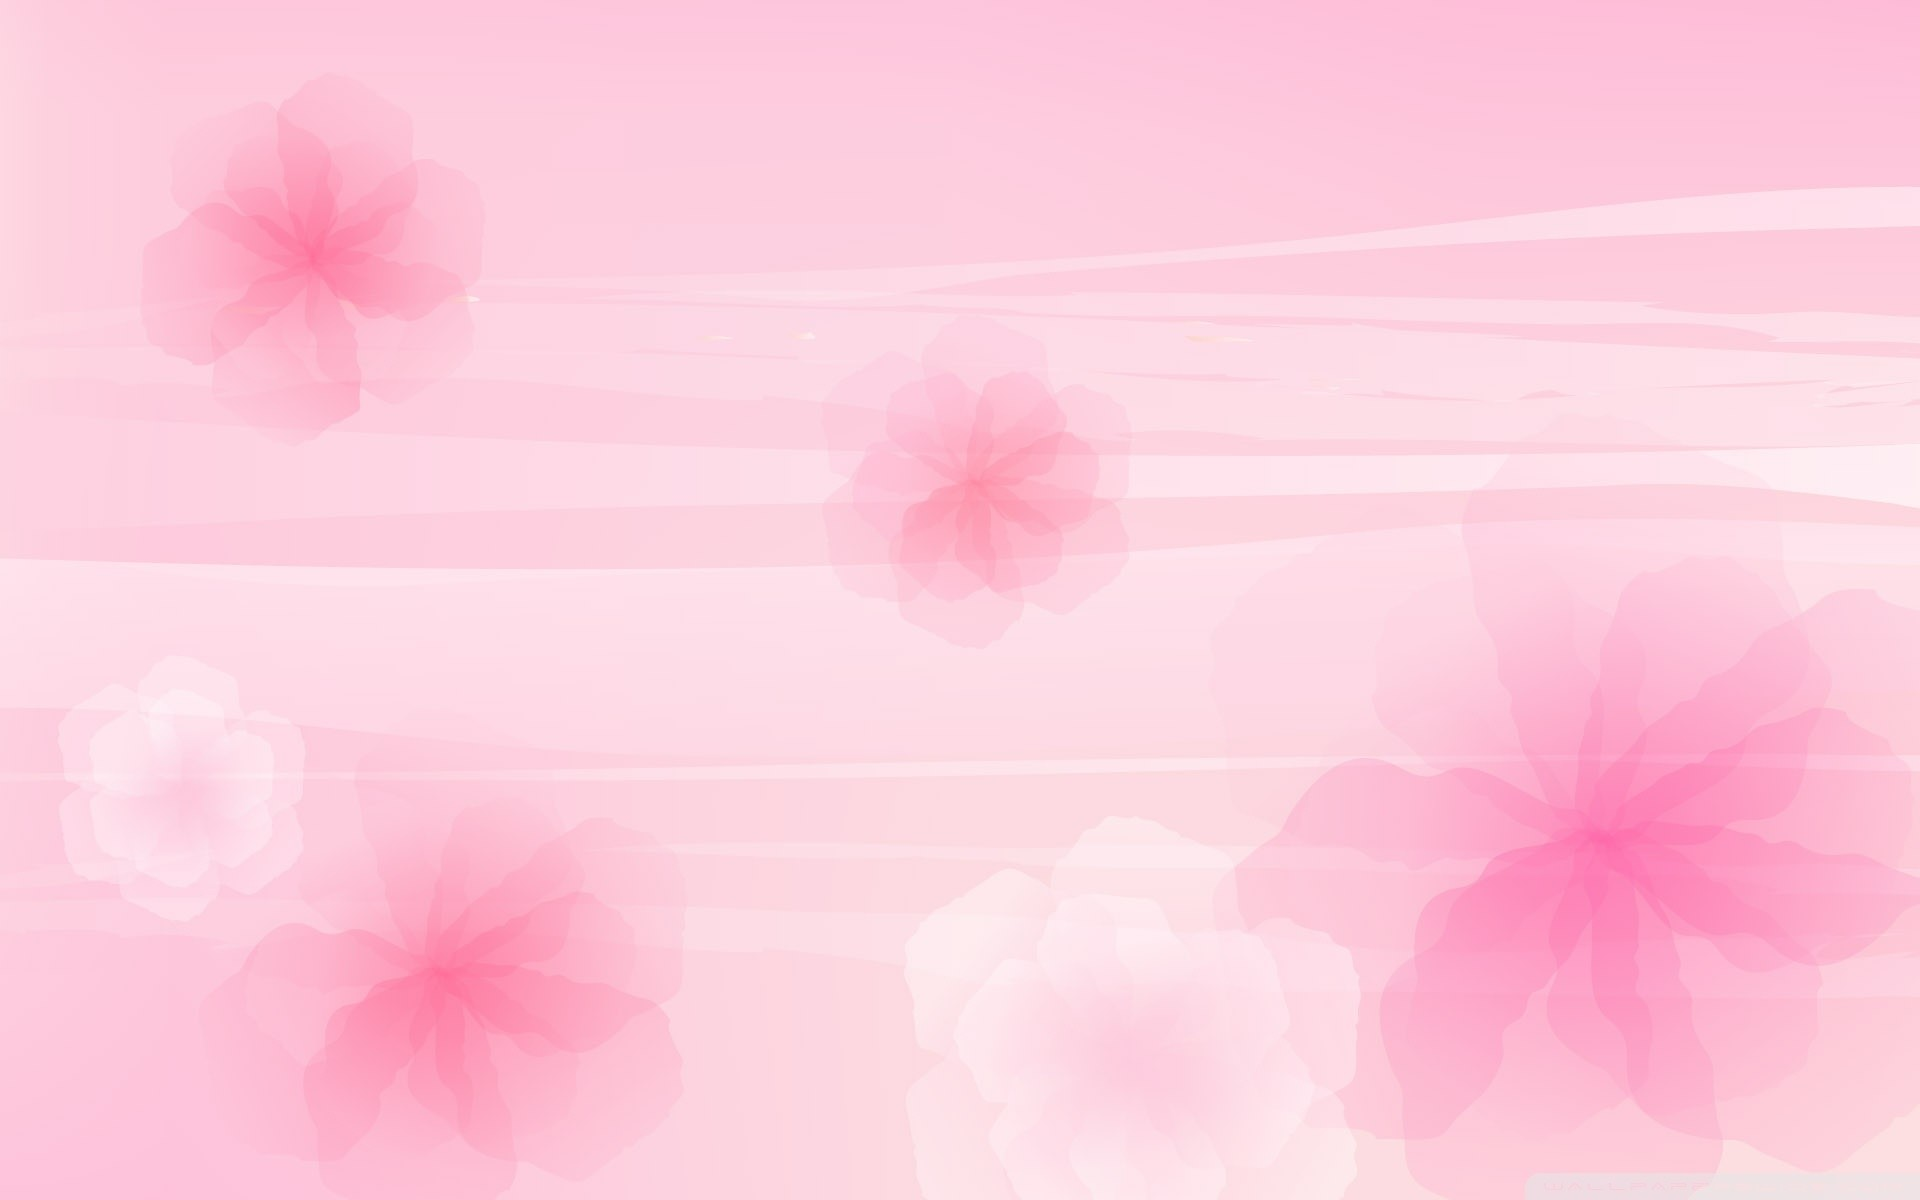 1920x1200 Pastel Lace Backgrounds Tumblr Lights You Themes Displaying Images For Pink  Nursing Background. house site ...